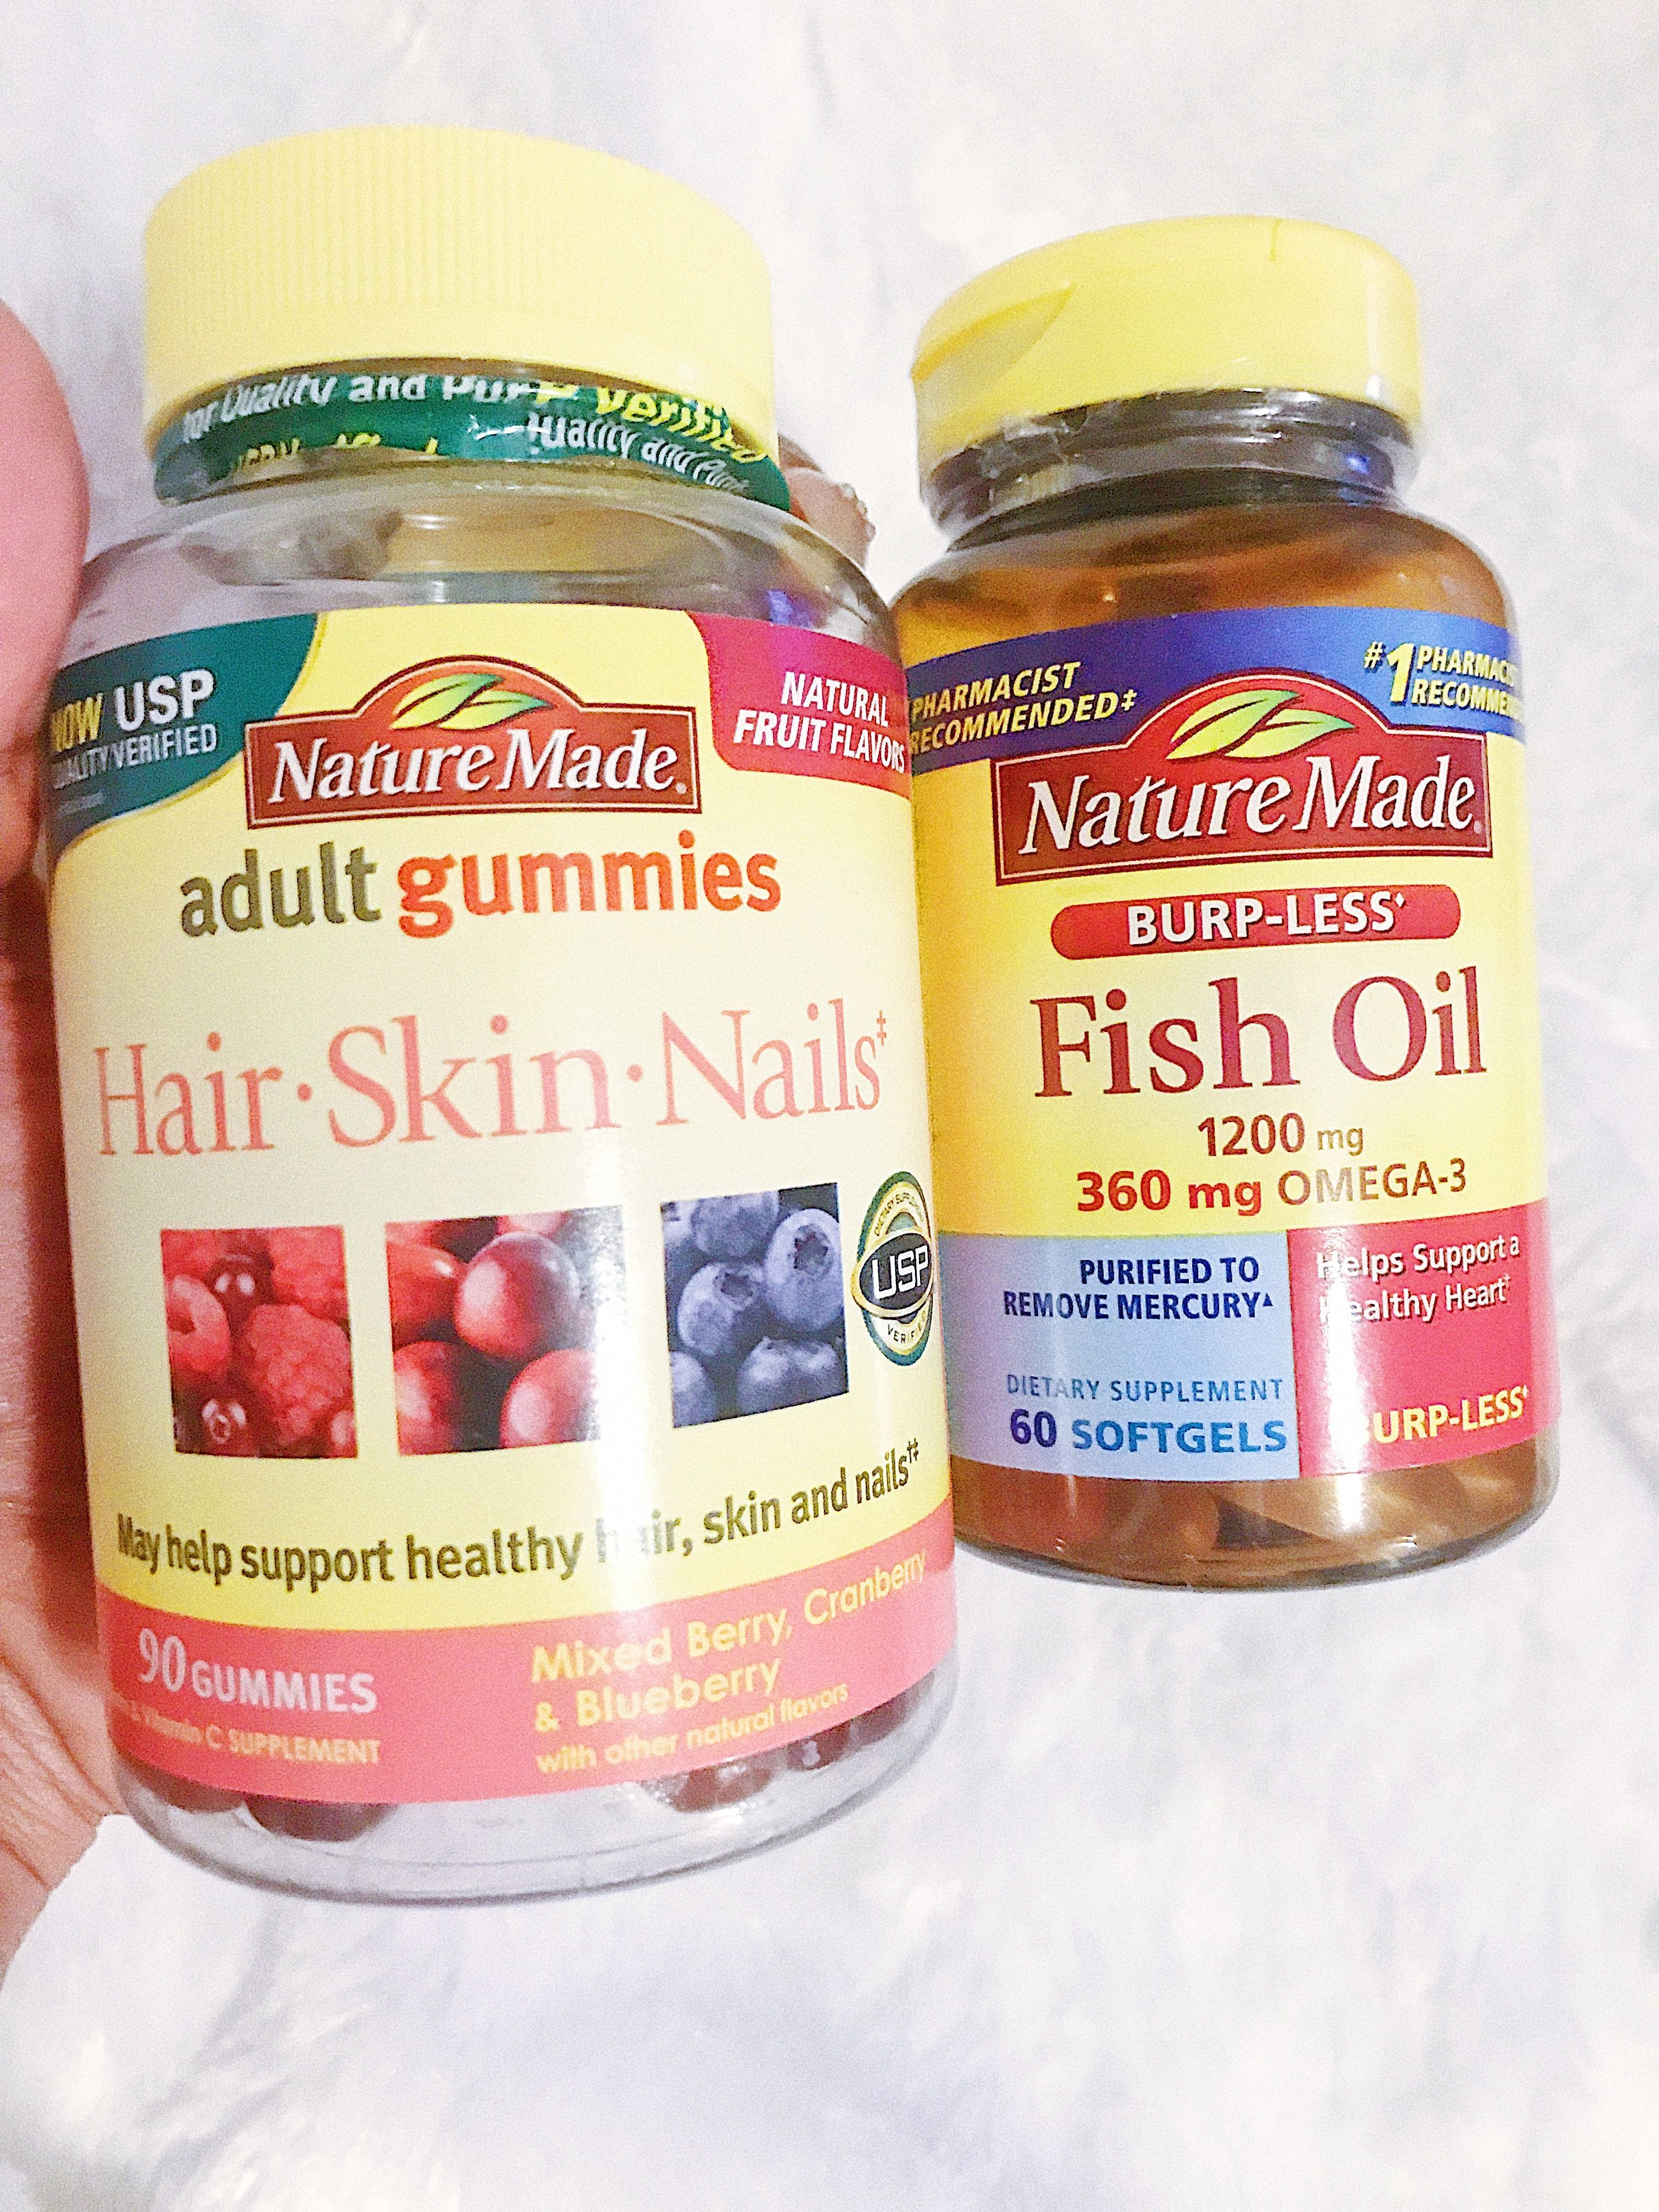 Fish oil for hair: feedback on the results 100